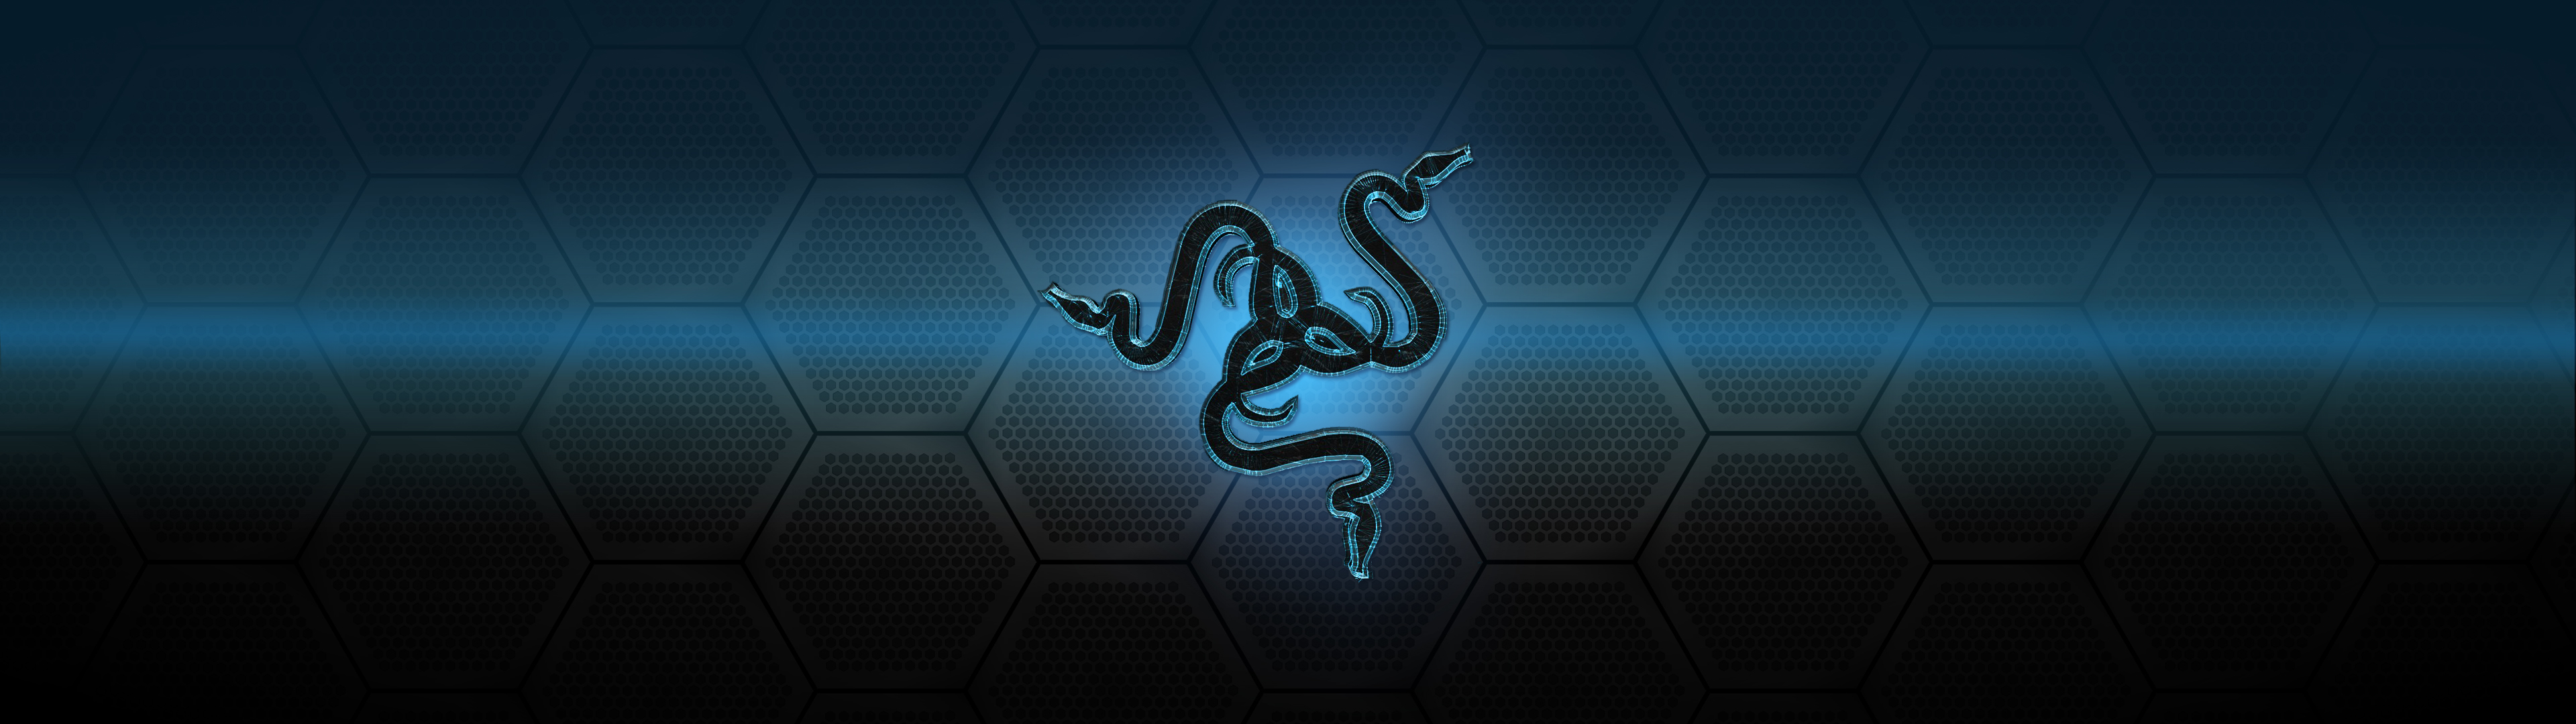 Razer wallpapers by wifsimster 3840x1080